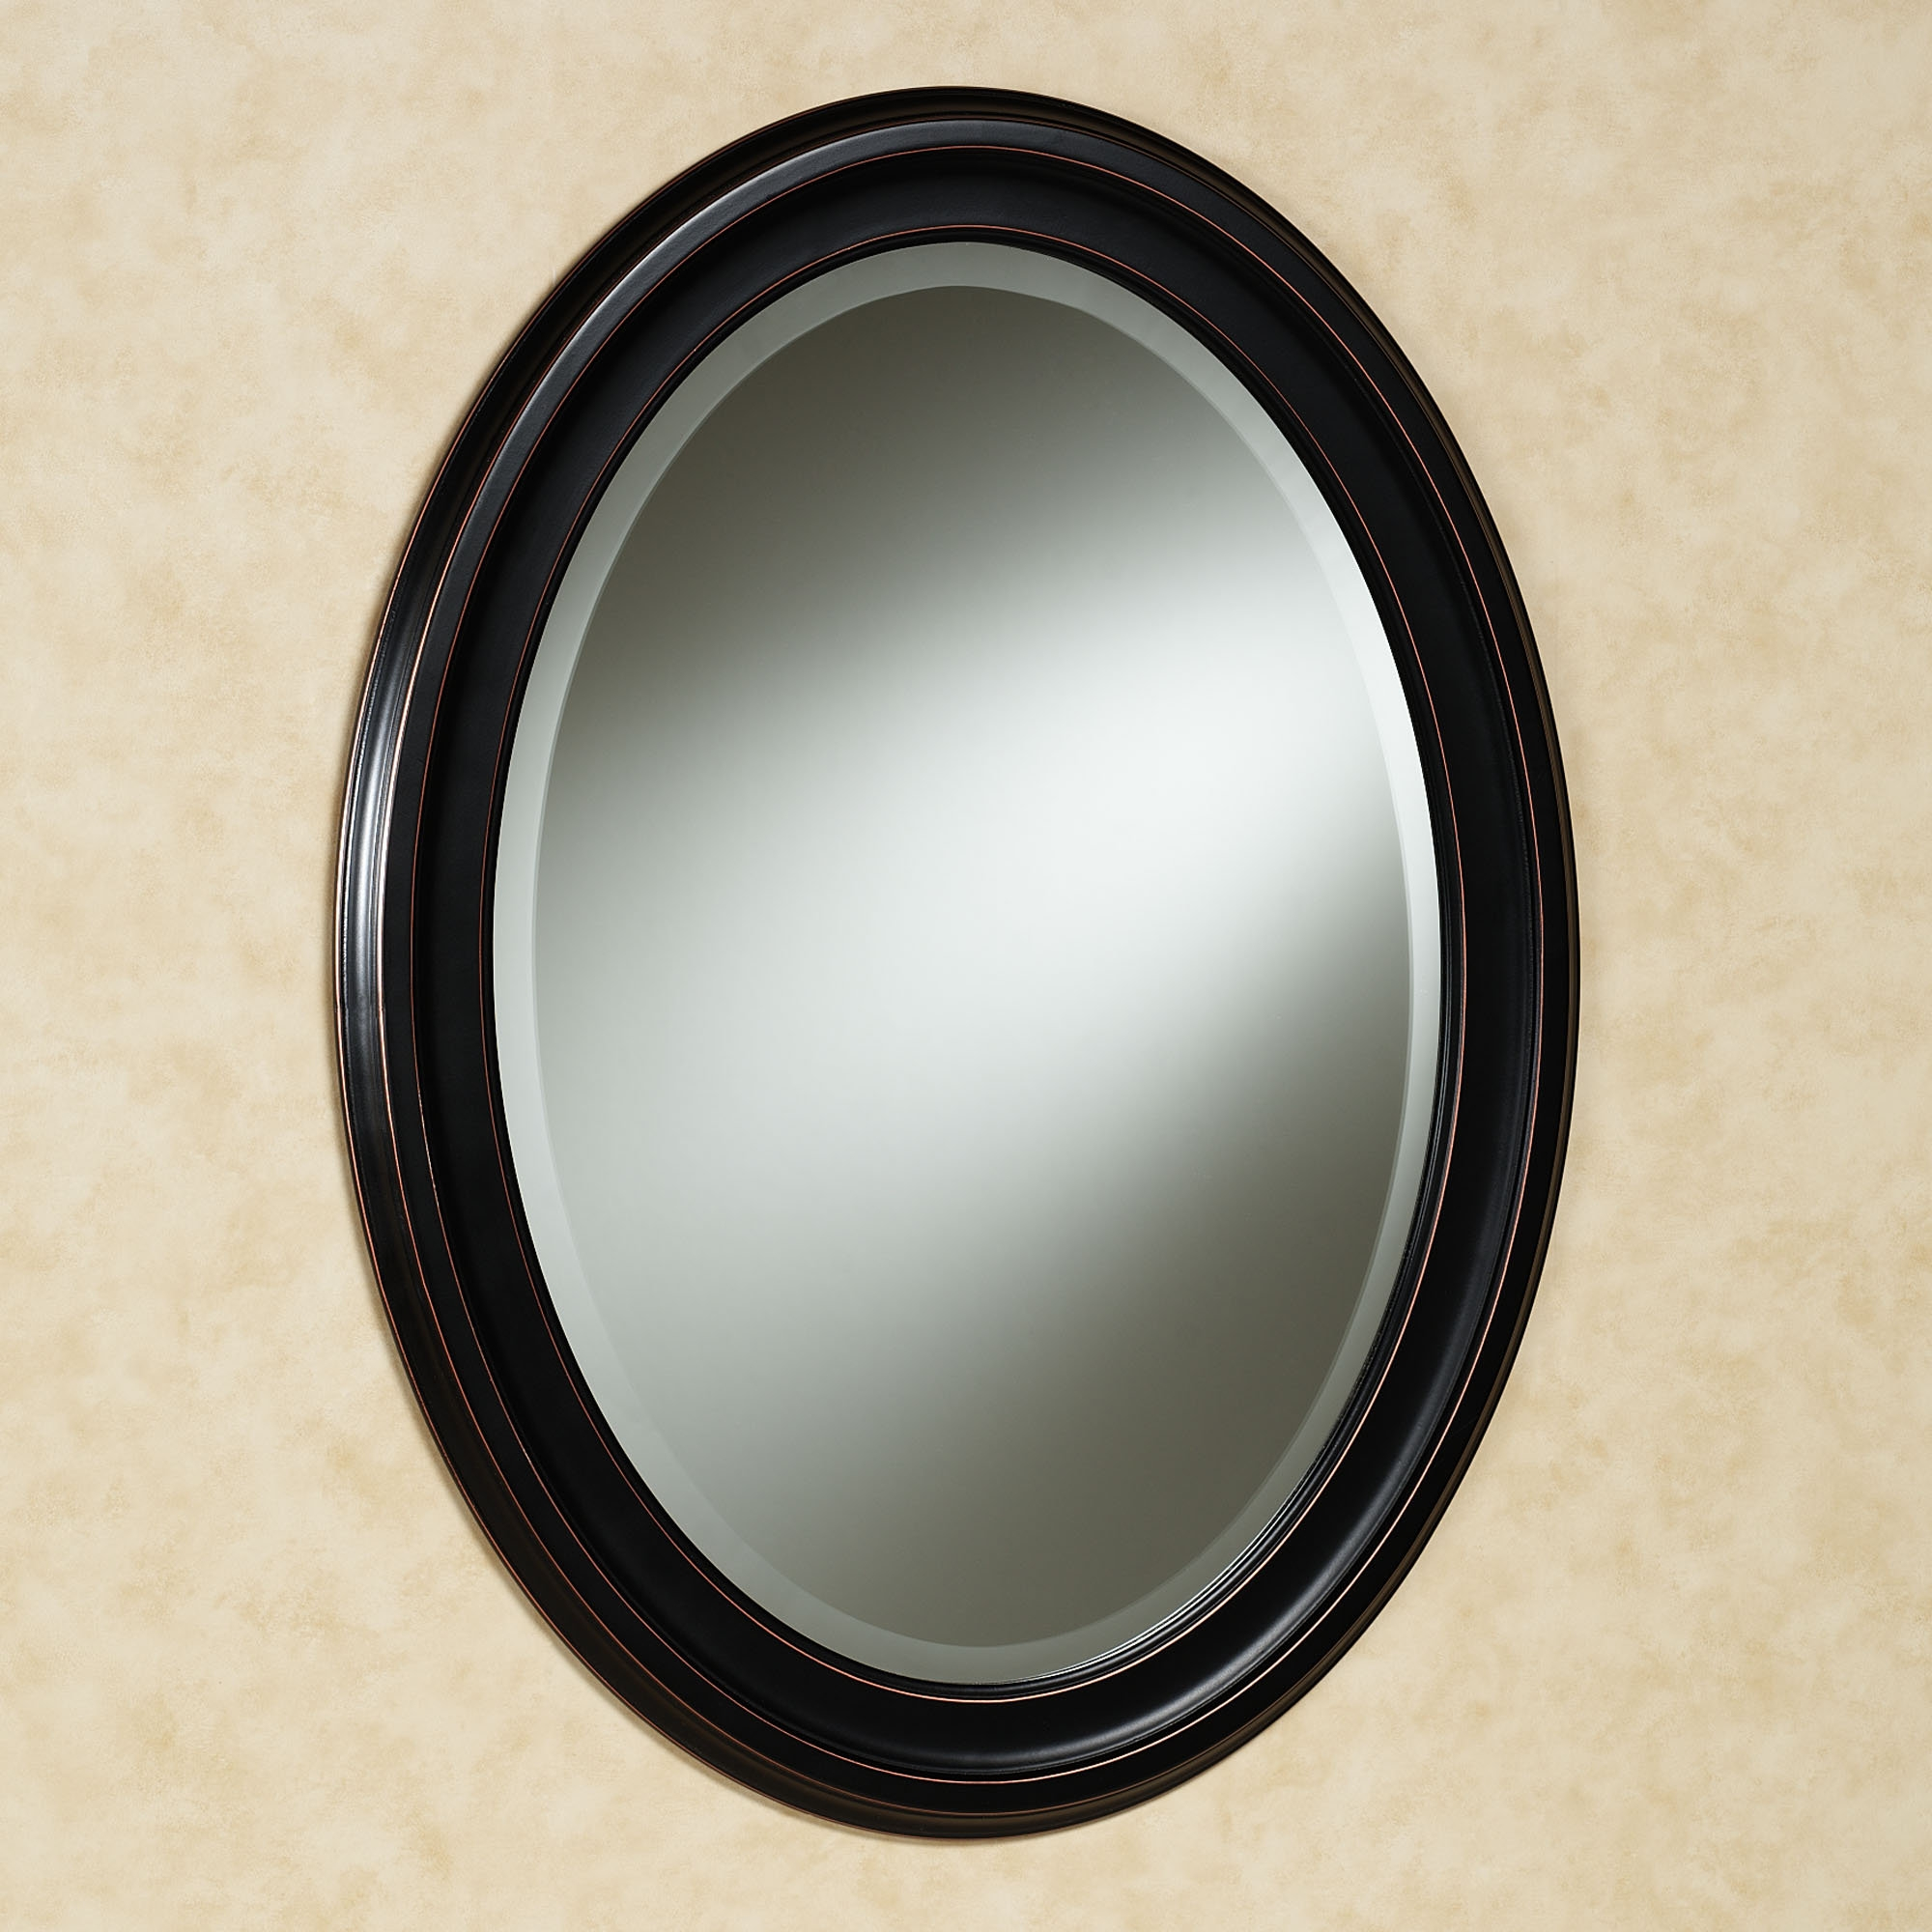 Oval Wall Mirrors Black Oval Wall Clock Black Oval Wall Mirror In Black Oval Wall Mirror (Image 10 of 15)